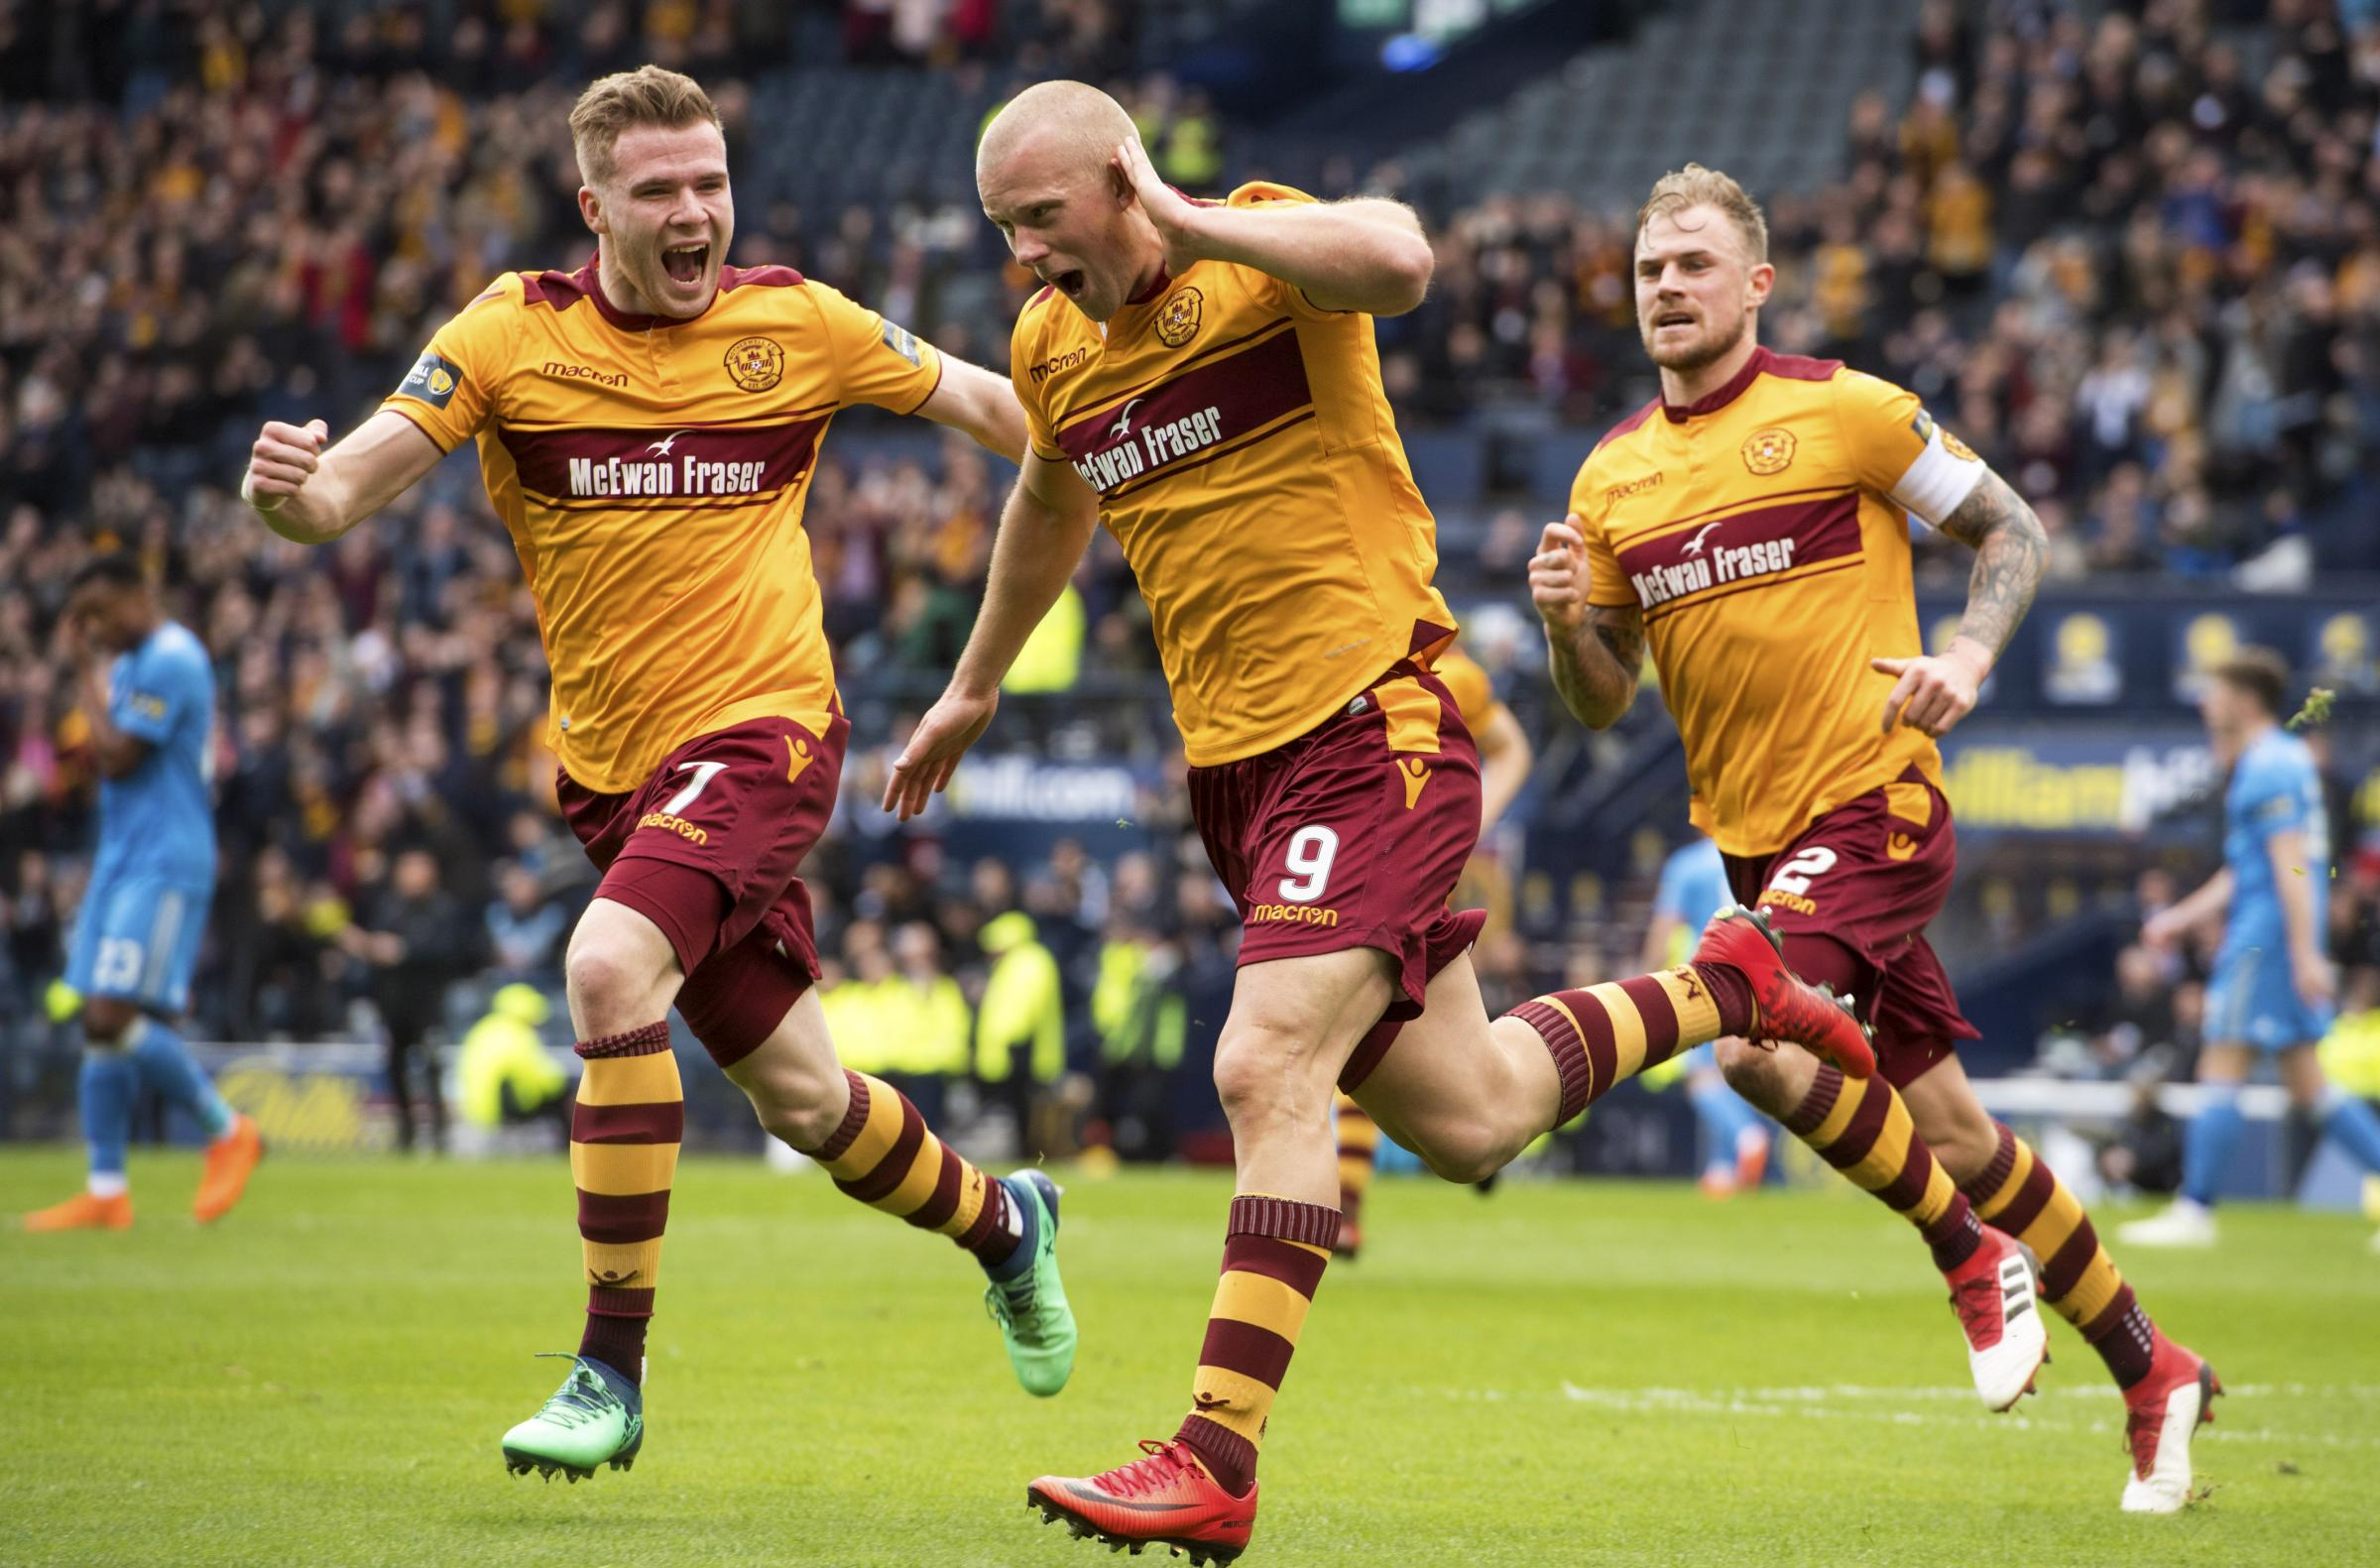 Main man: Motherwell's Curtis Main wheels away after opening the scoring against Aberdeen (Picture: SNS)